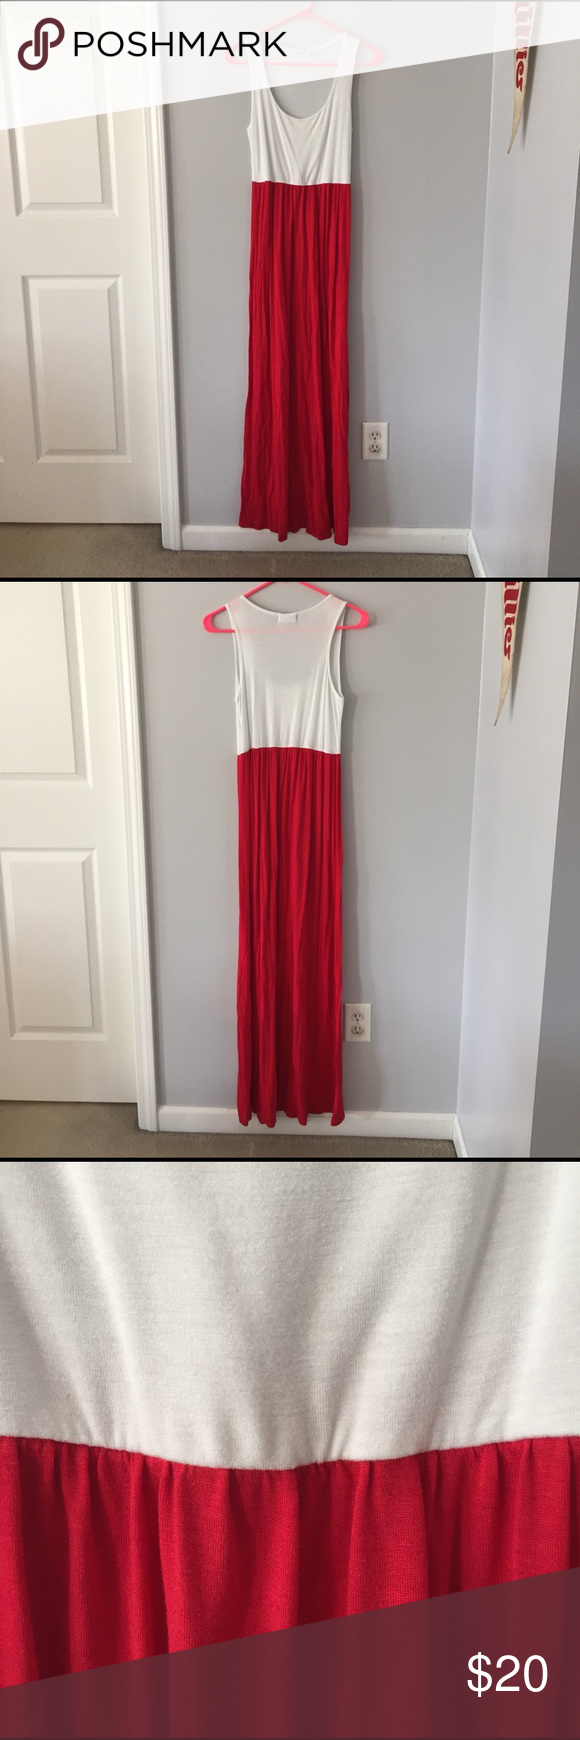 Red & White Maxi Dress Super soft cotton maxi dress from a boutique in Kentucky. Only worn twice, just a little wrinkly from sitting in the closet. I'm 5'3 and the dress comes all the way to the floor. Great with wedges. Offers welcome! No trades. Bluetique  Dresses Maxi